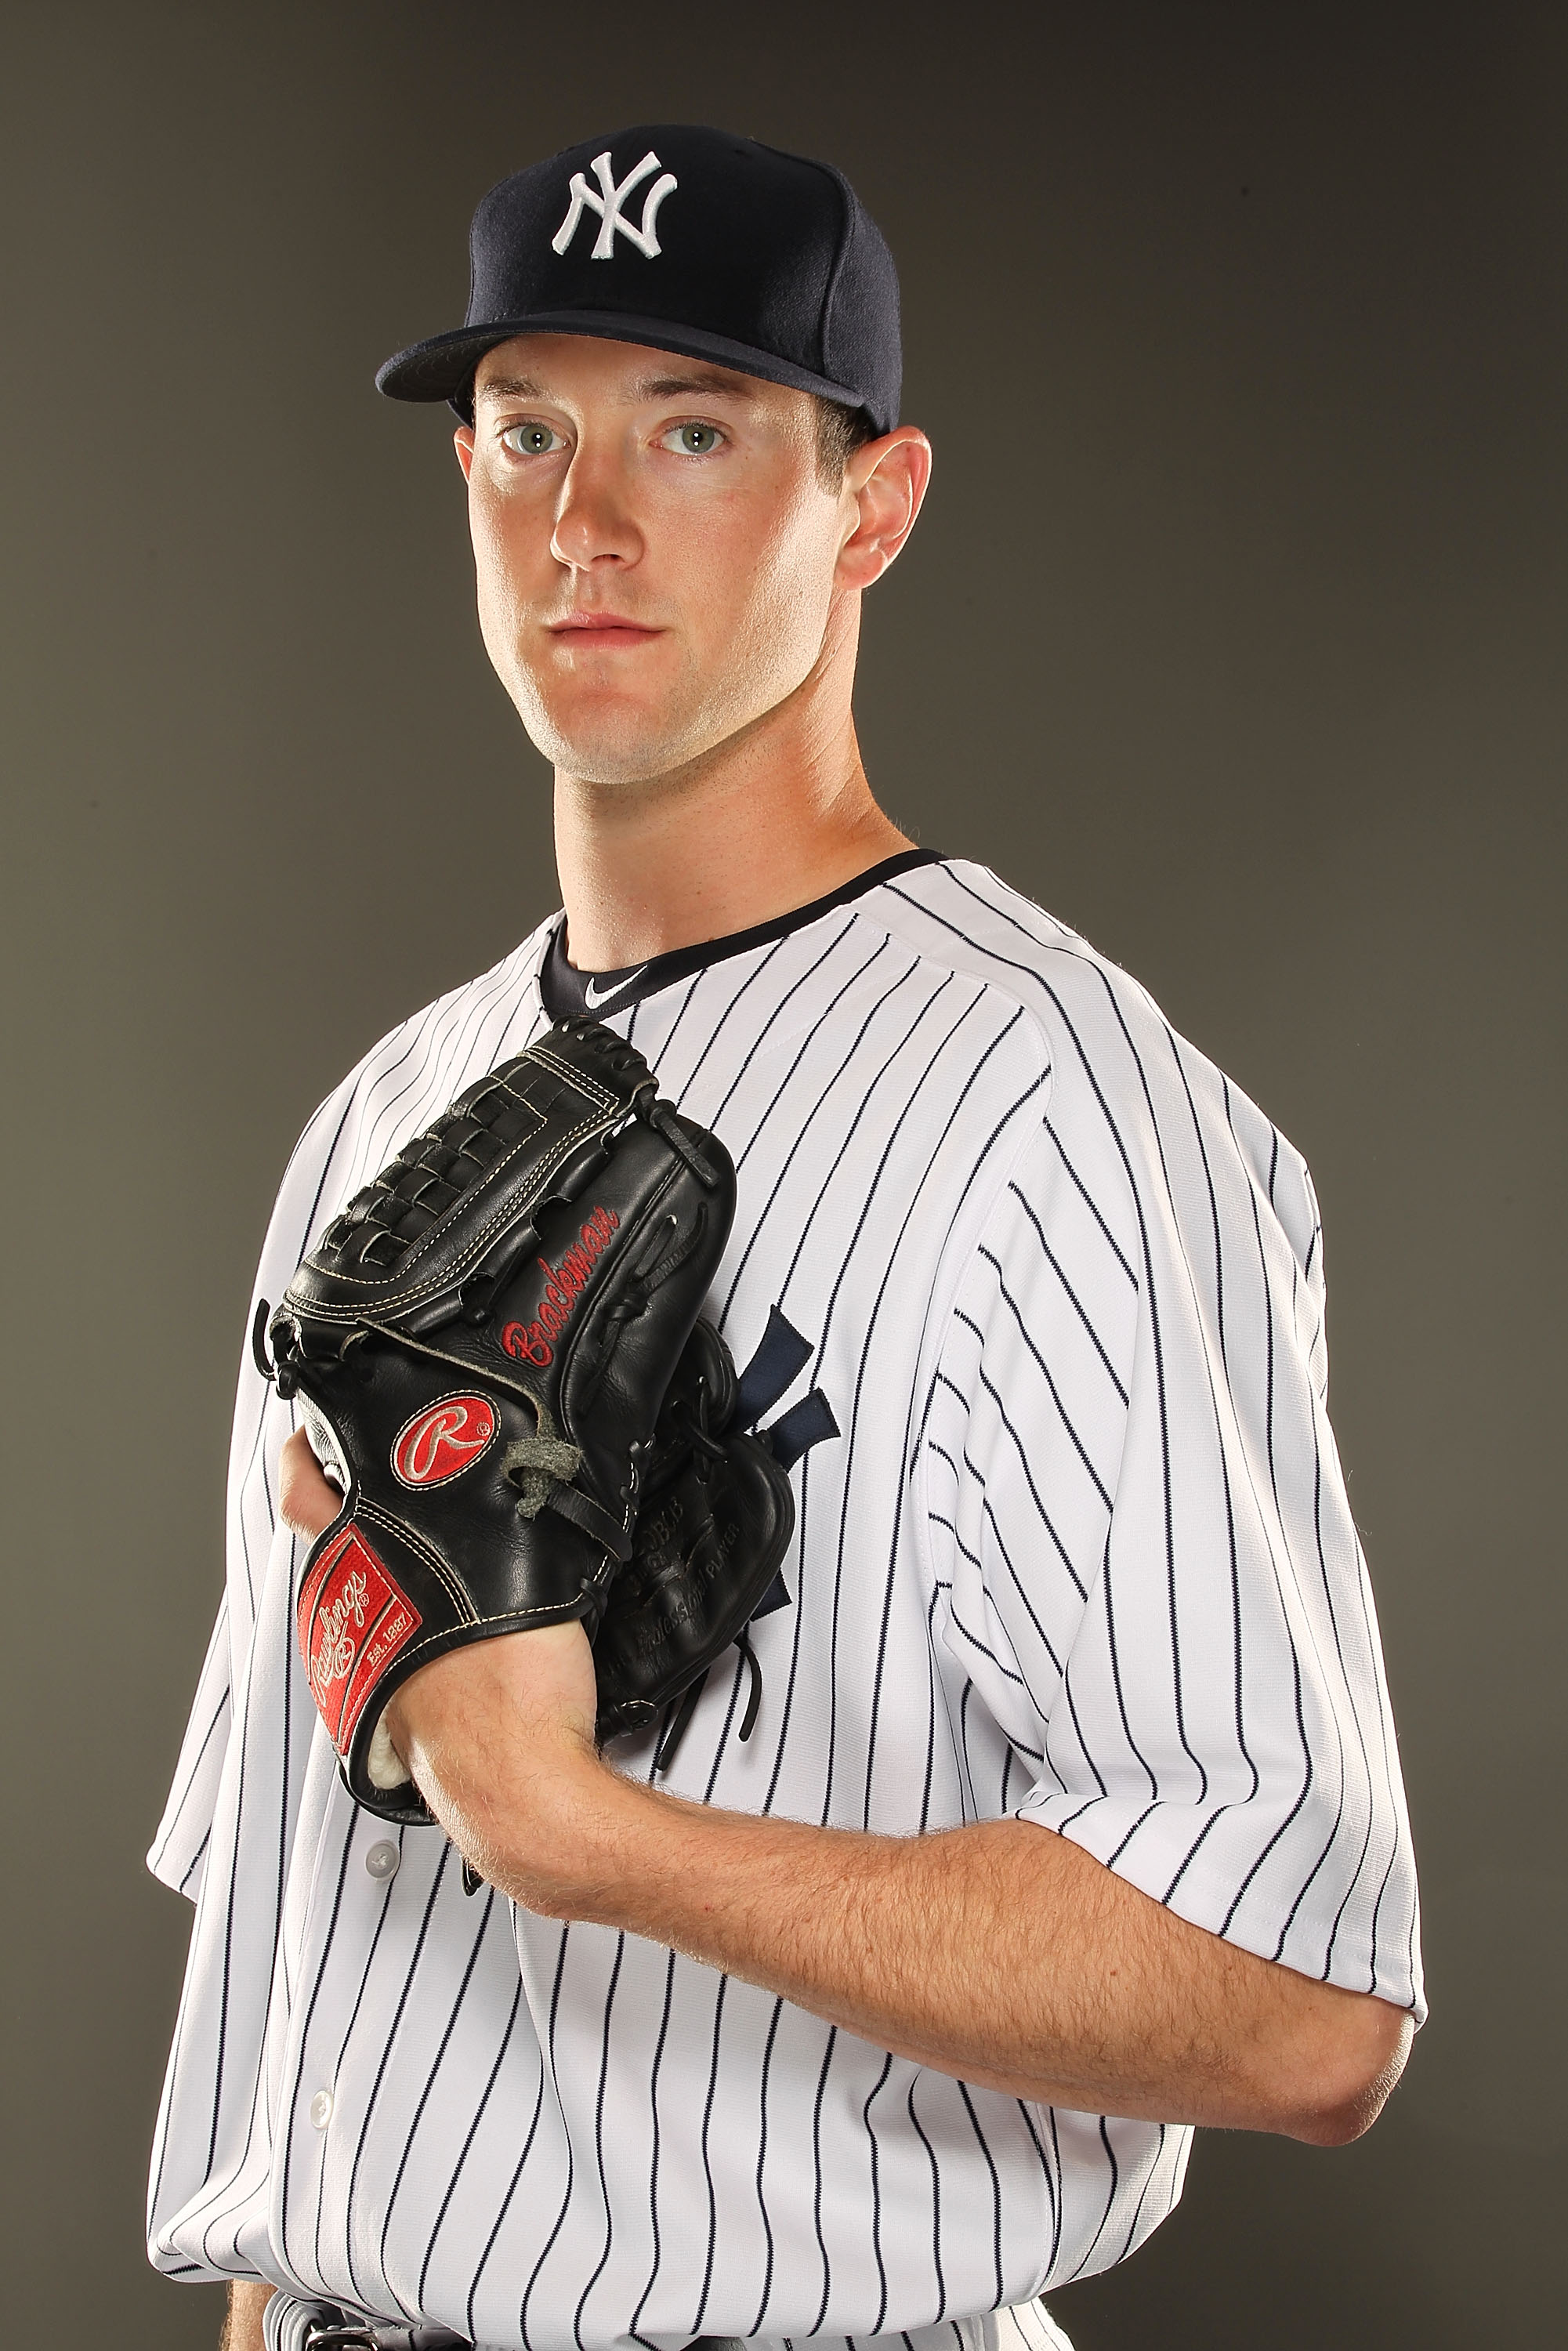 TAMPA, FL - FEBRUARY 23:  Andrew Brackman #66 of the New York Yankees poses for a portrait on Photo Day at George M. Steinbrenner Field on February 23, 2011 in Tampa, Florida.  (Photo by Al Bello/Getty Images)